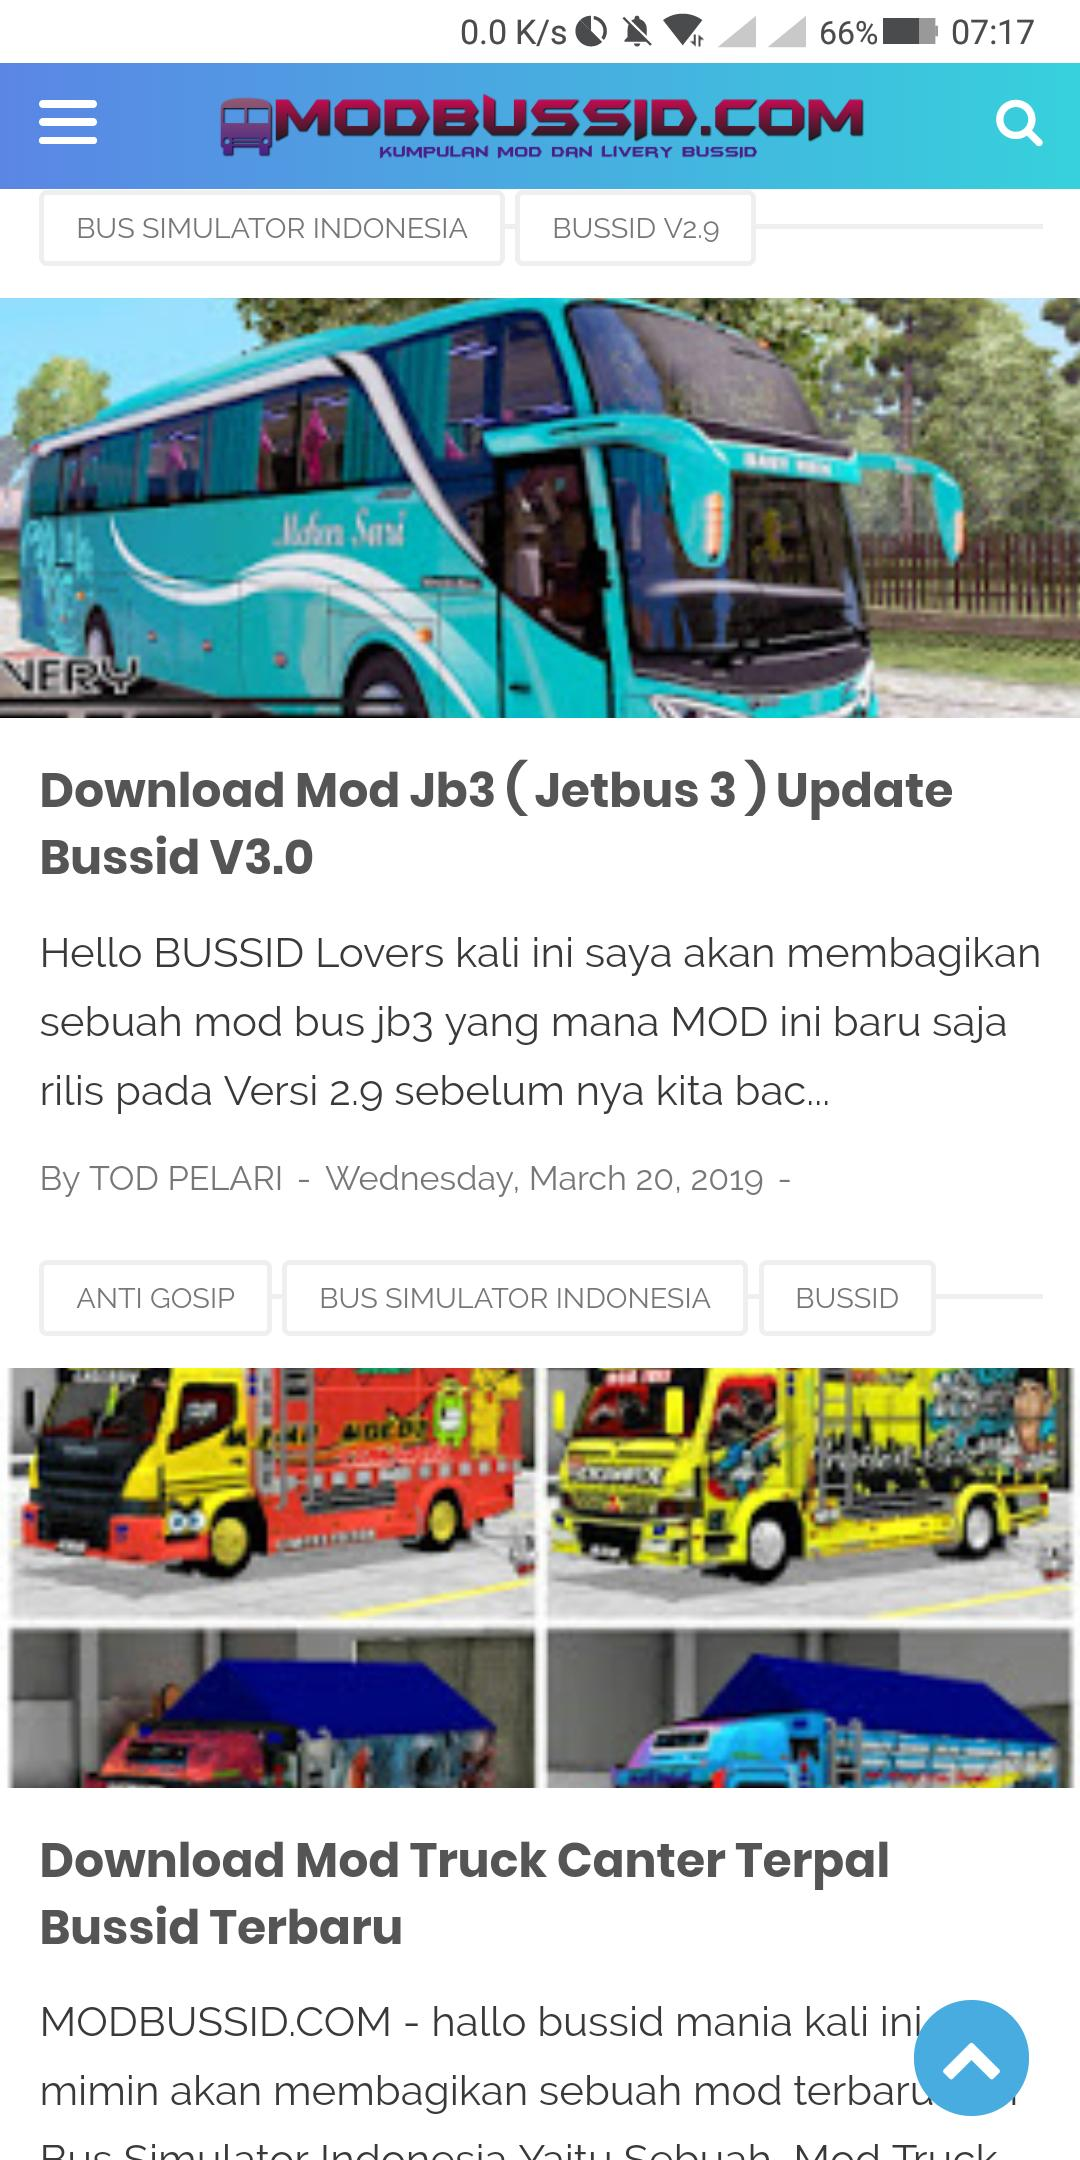 Modbussid com: Kumpulan Mod & Livery Bussid for Android - APK Download